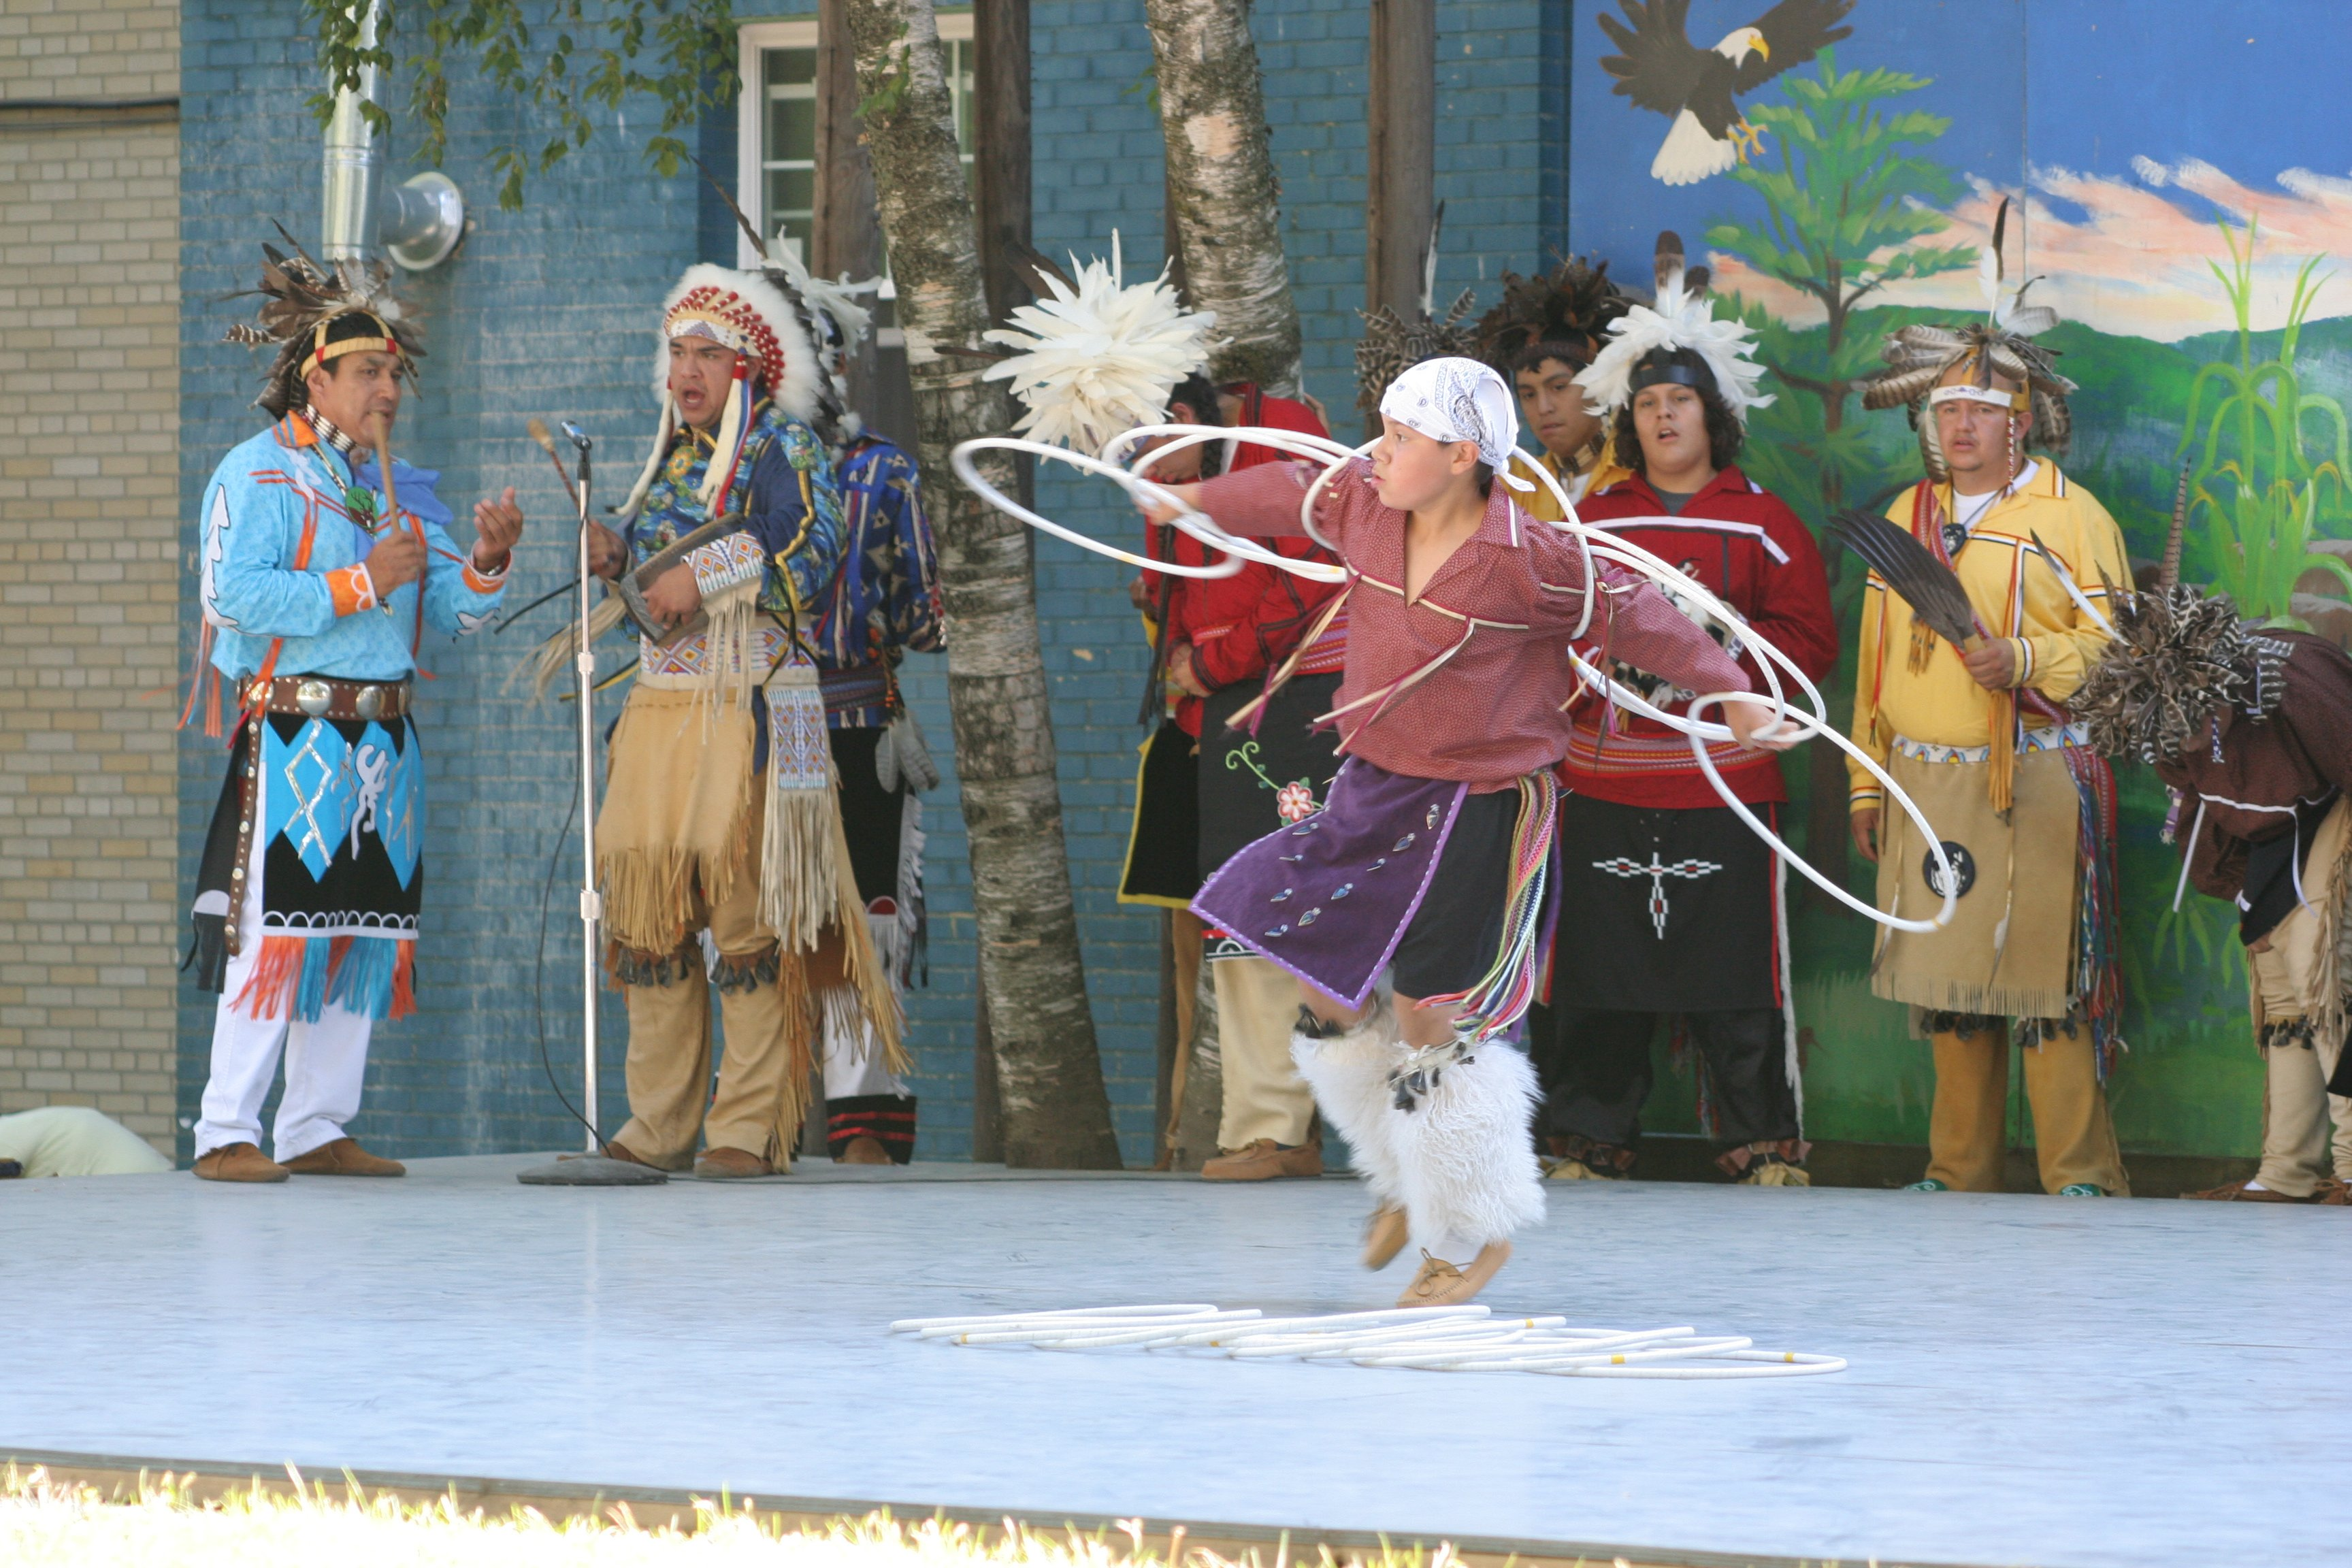 Iroquois performing a traditional dance at a cultural fair.